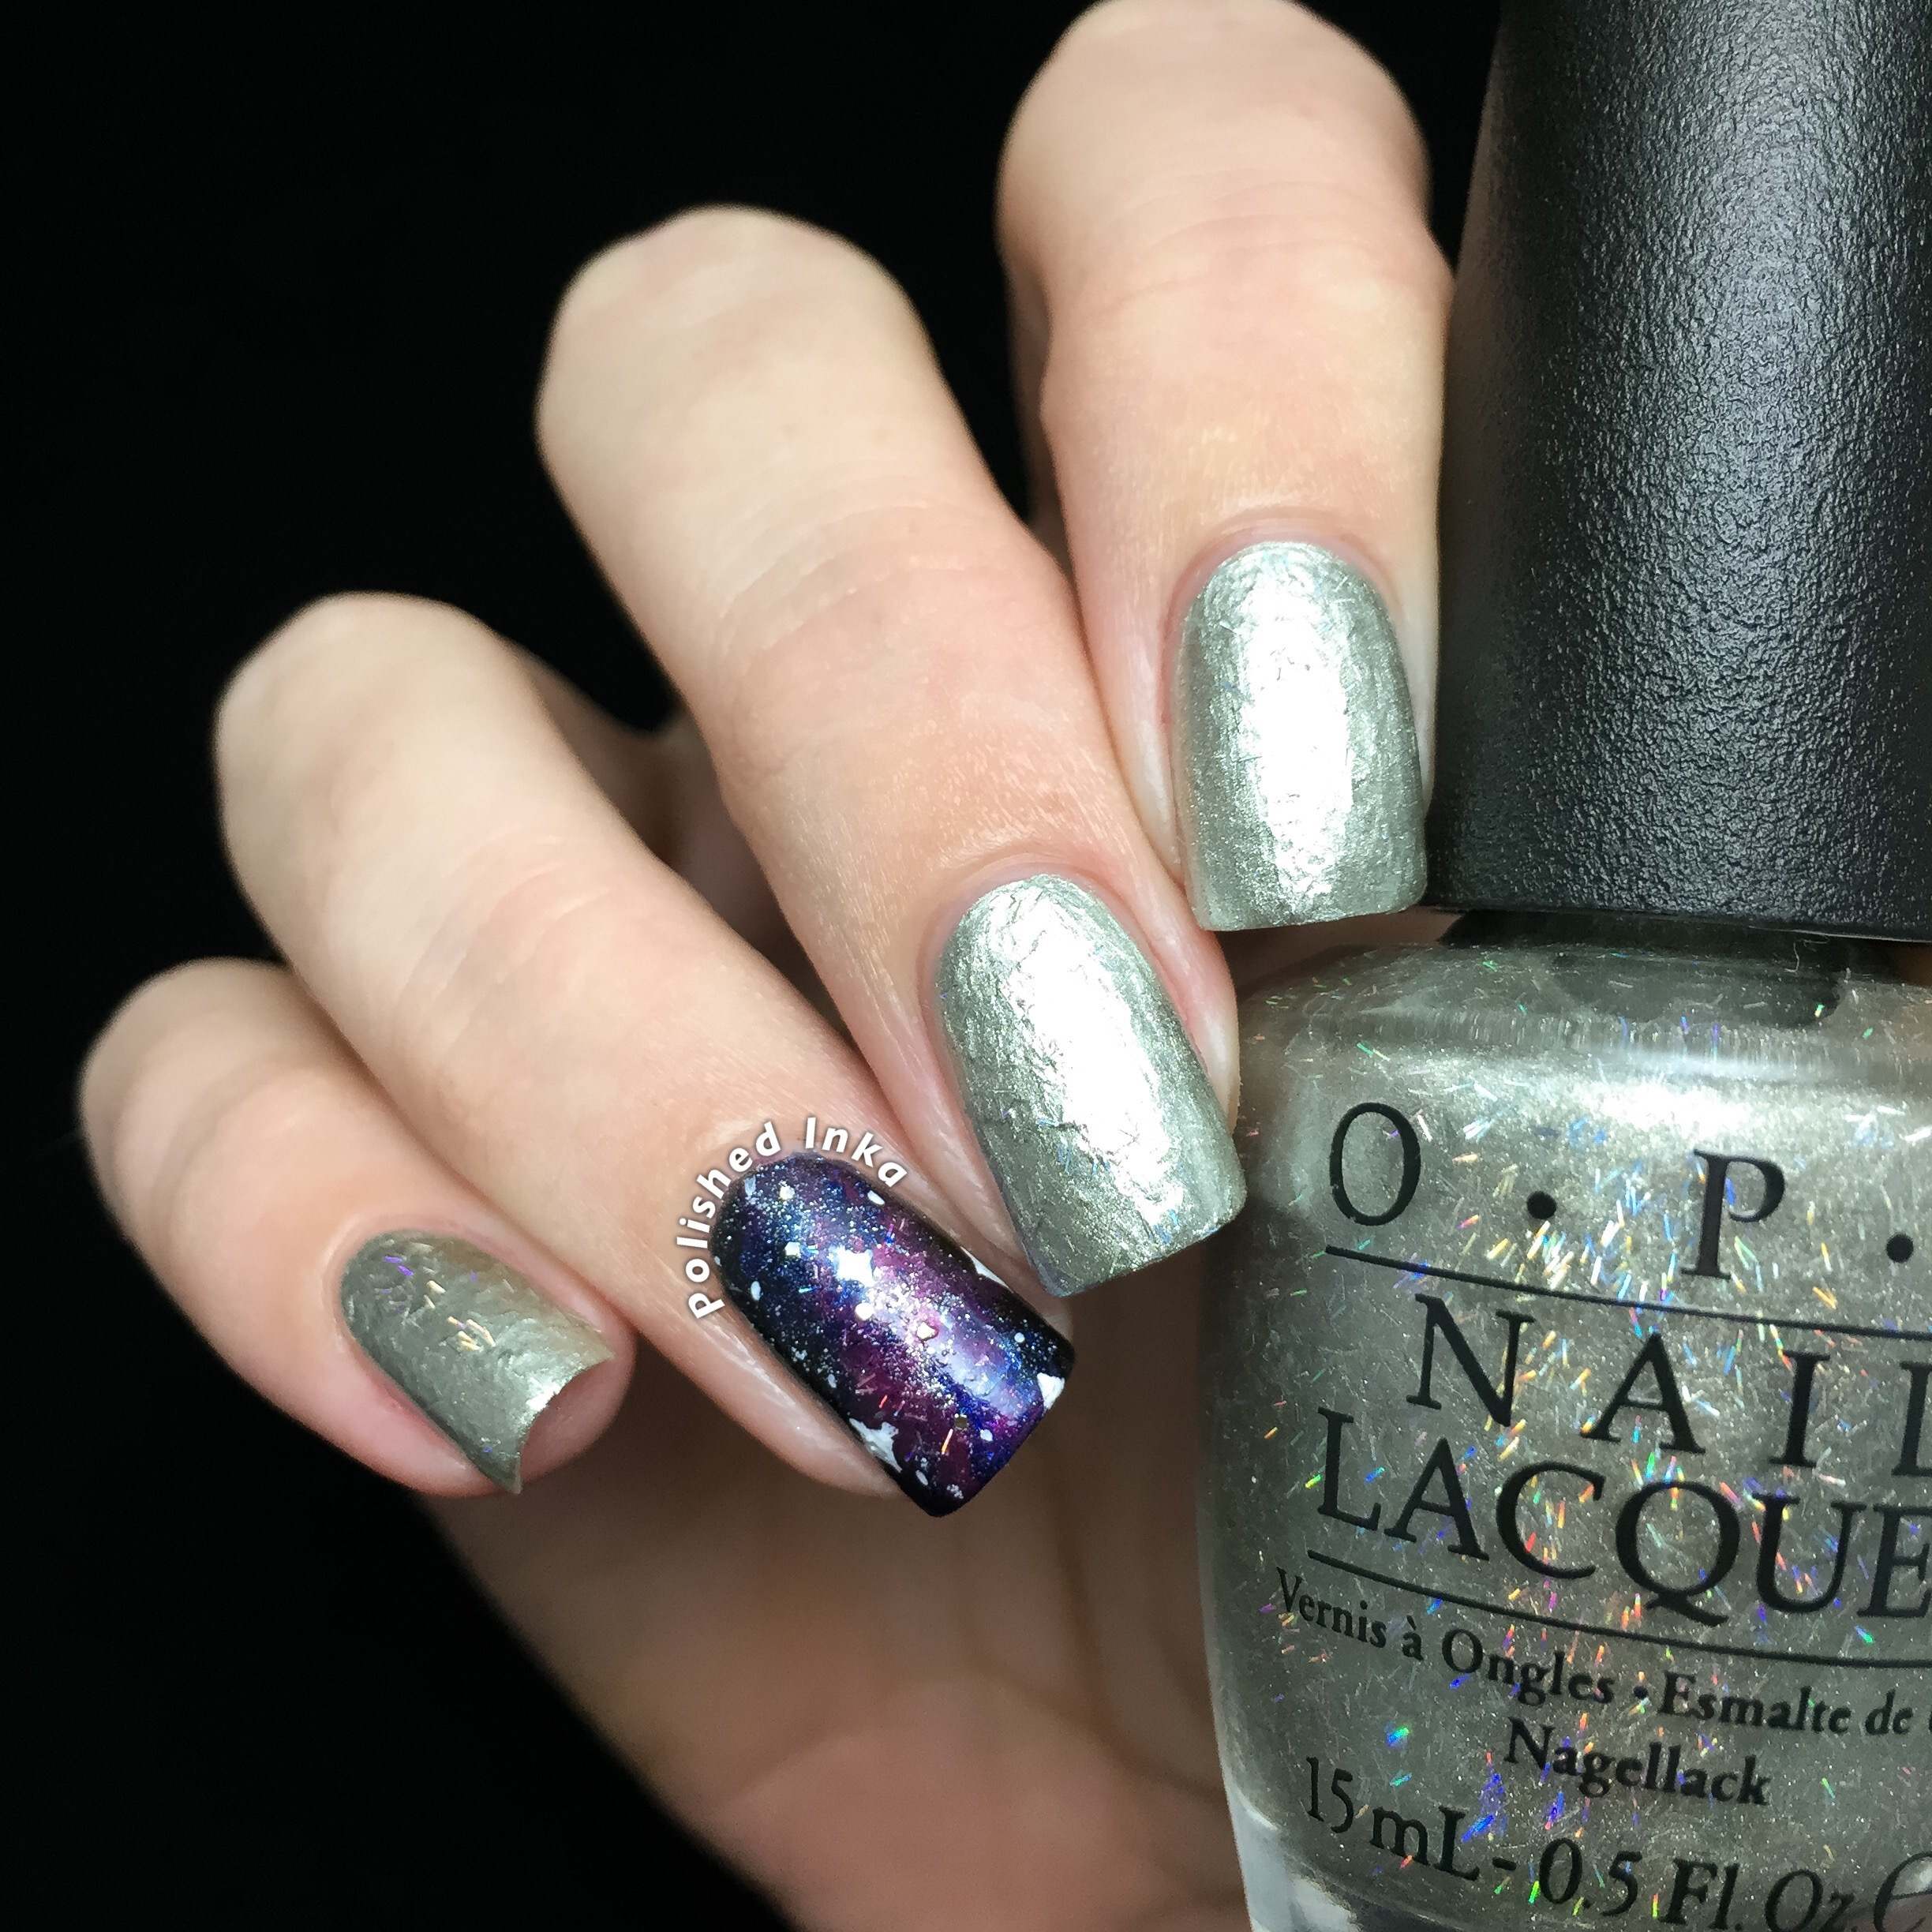 OPI Starlight Collection Christmas 2015 Is This Star Taken